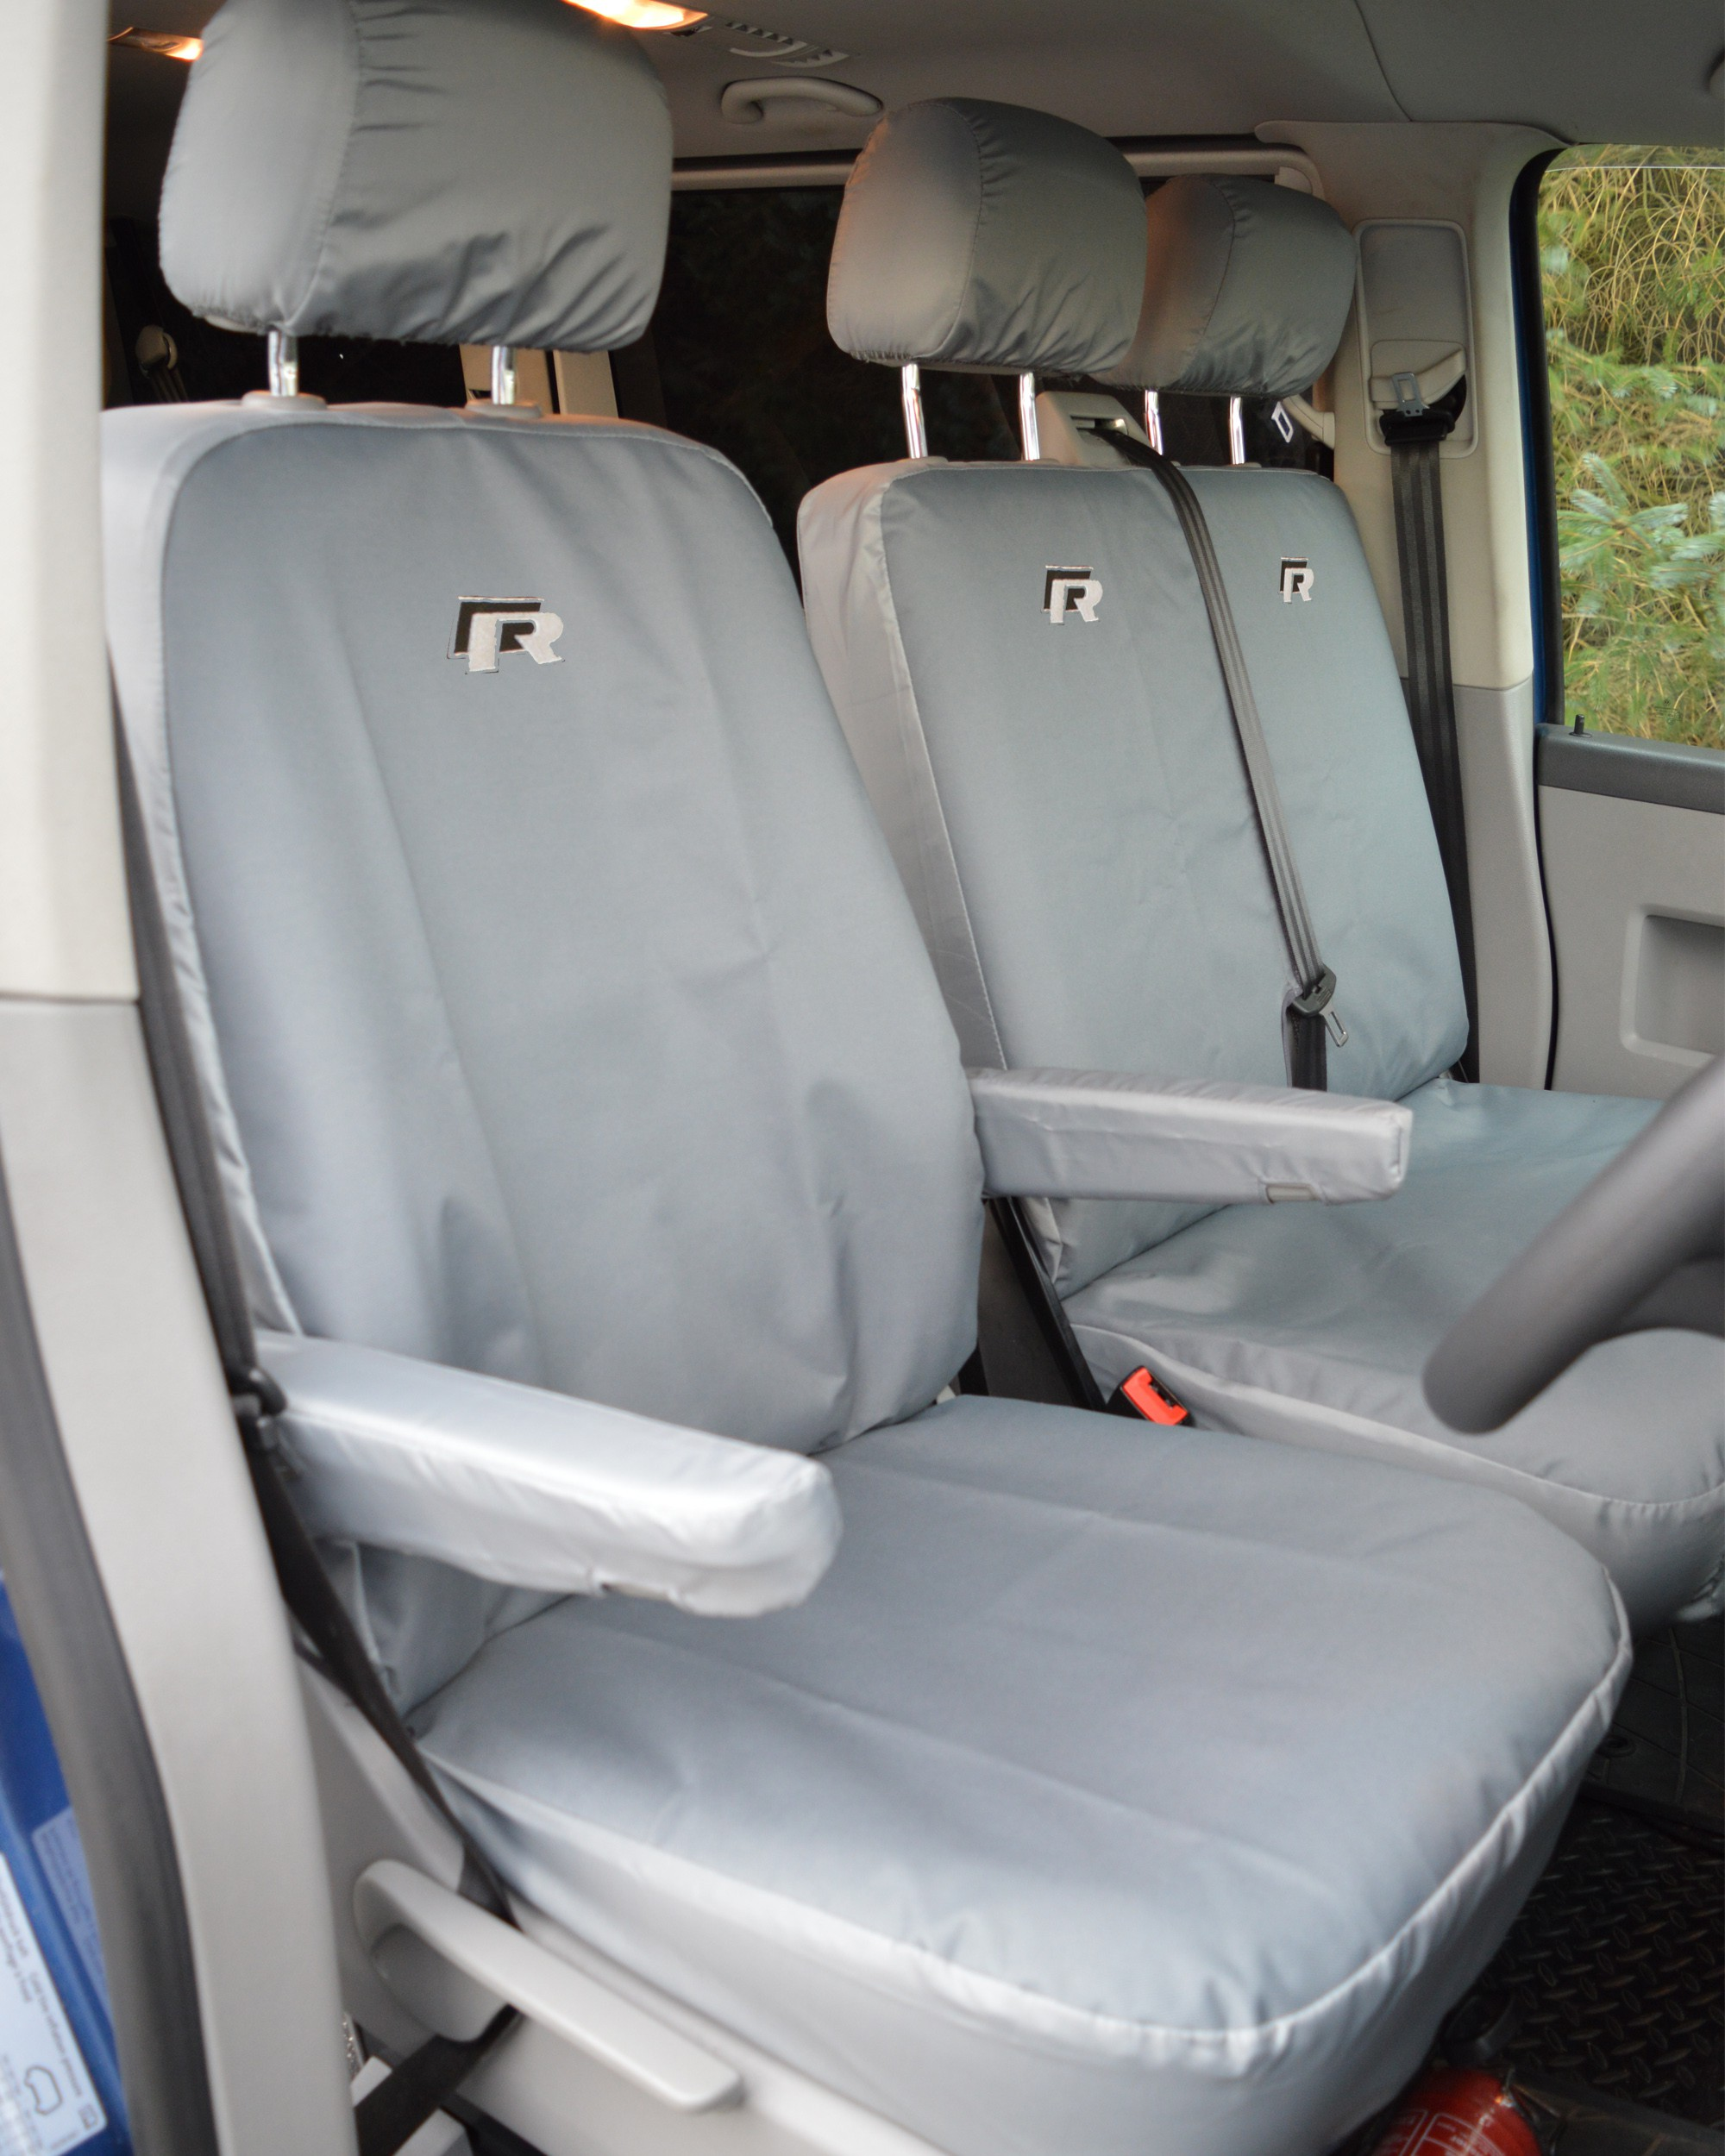 Volkswagen VW Transporter T6 R Line Heavy Duty Van Seat Covers